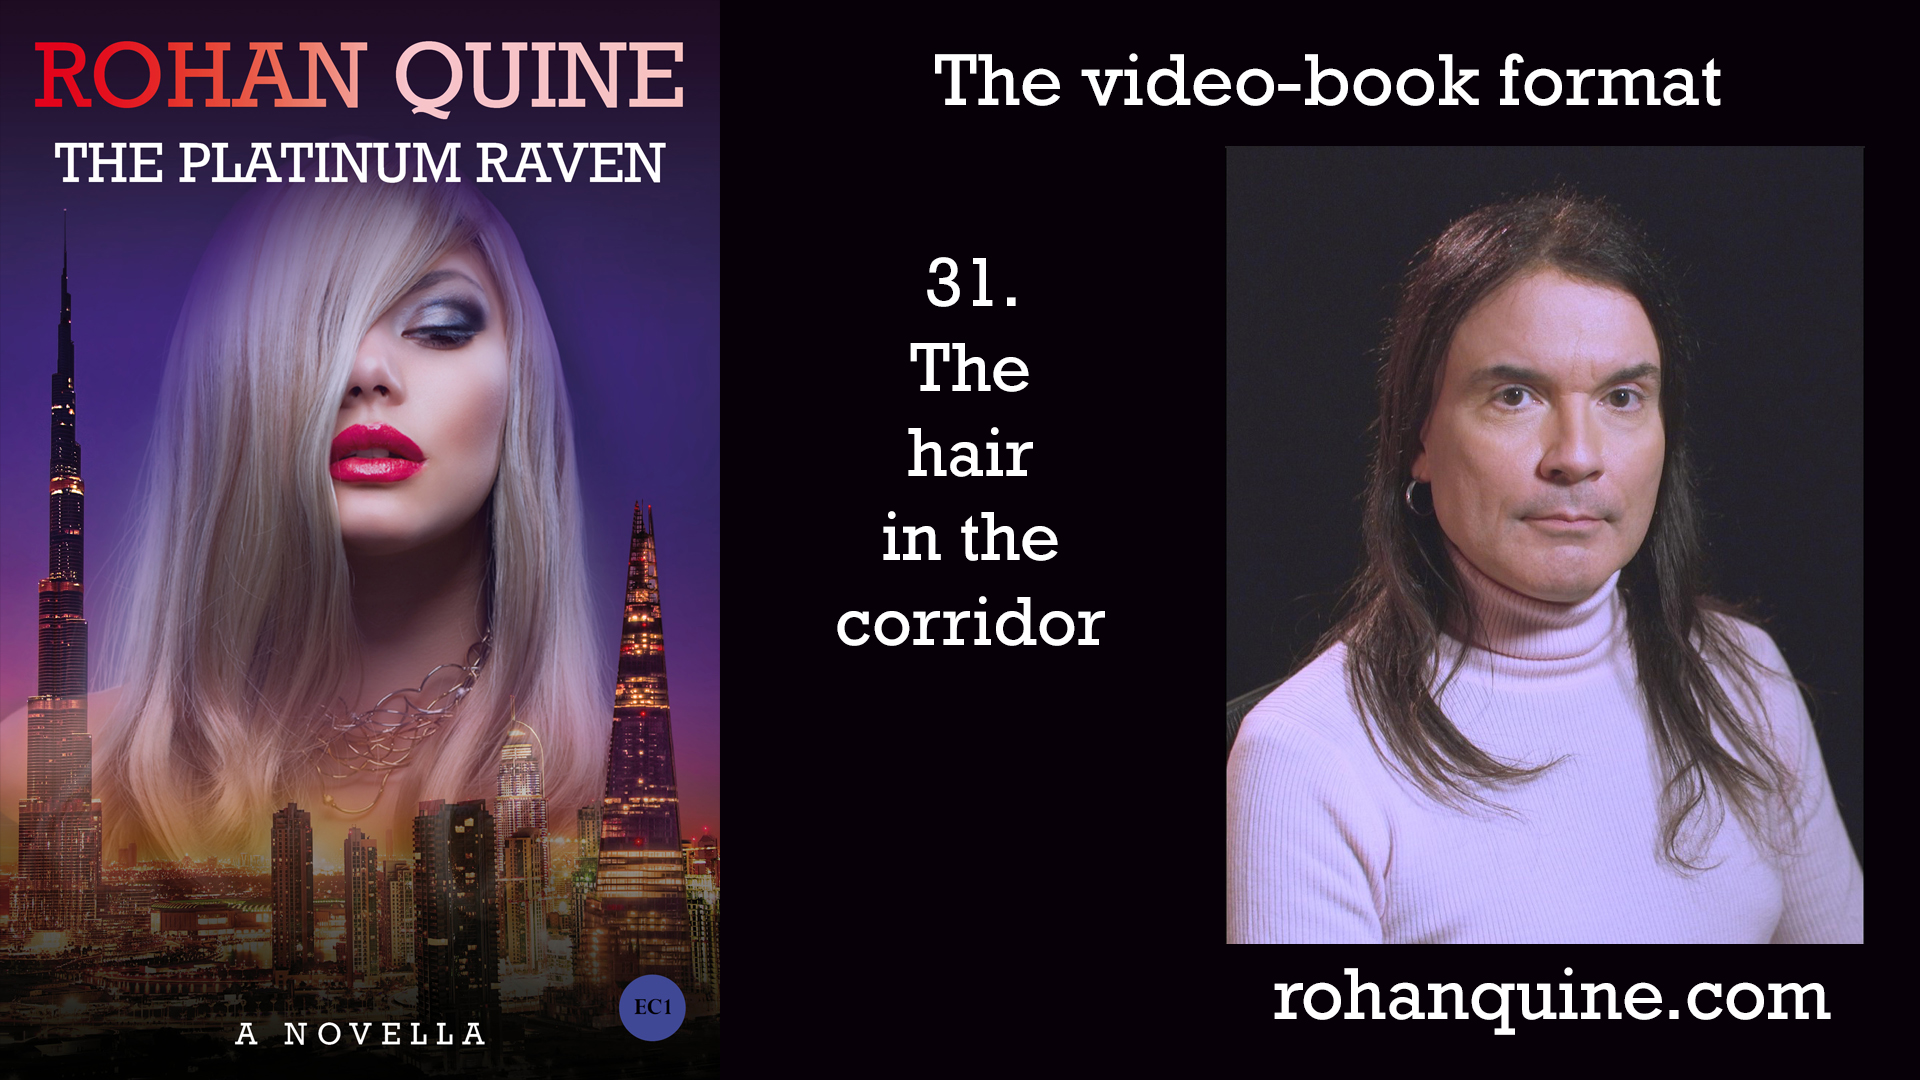 THE PLATINUM RAVEN by Rohan Quine - video-book format - chapter 31